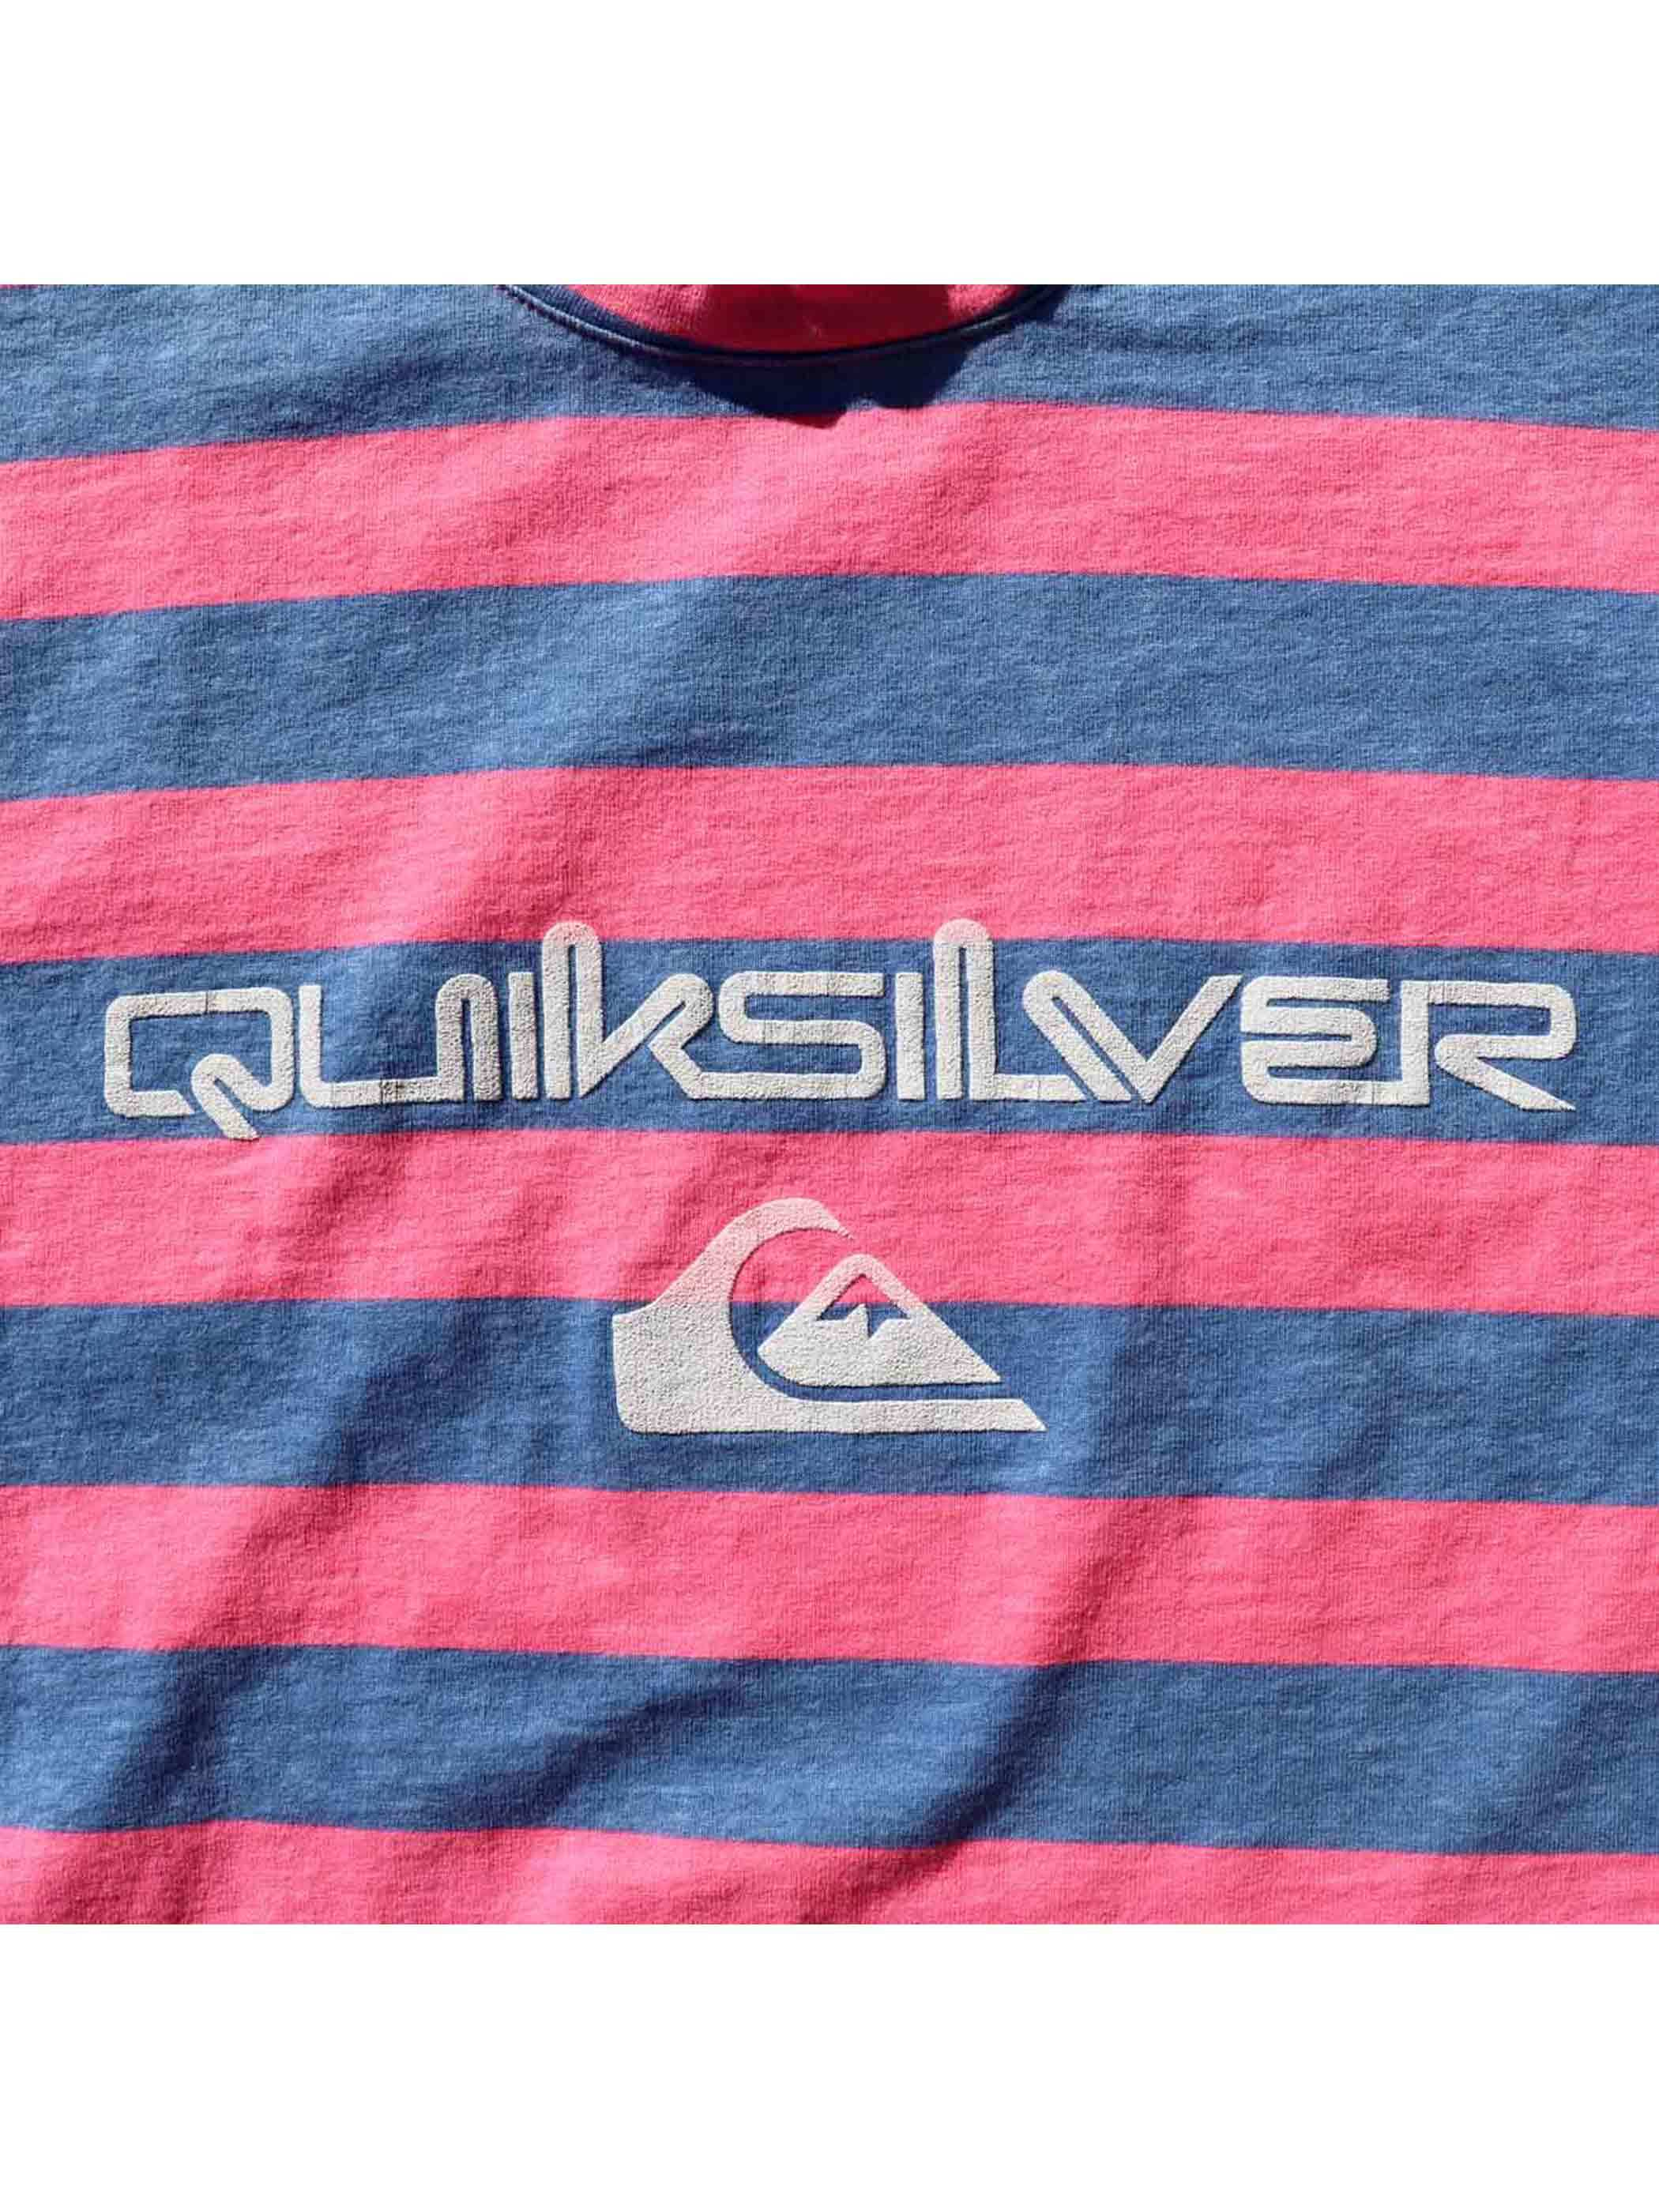 80's QUIKSILVER ピンク×ブルー プリントボーダーTシャツ [M]